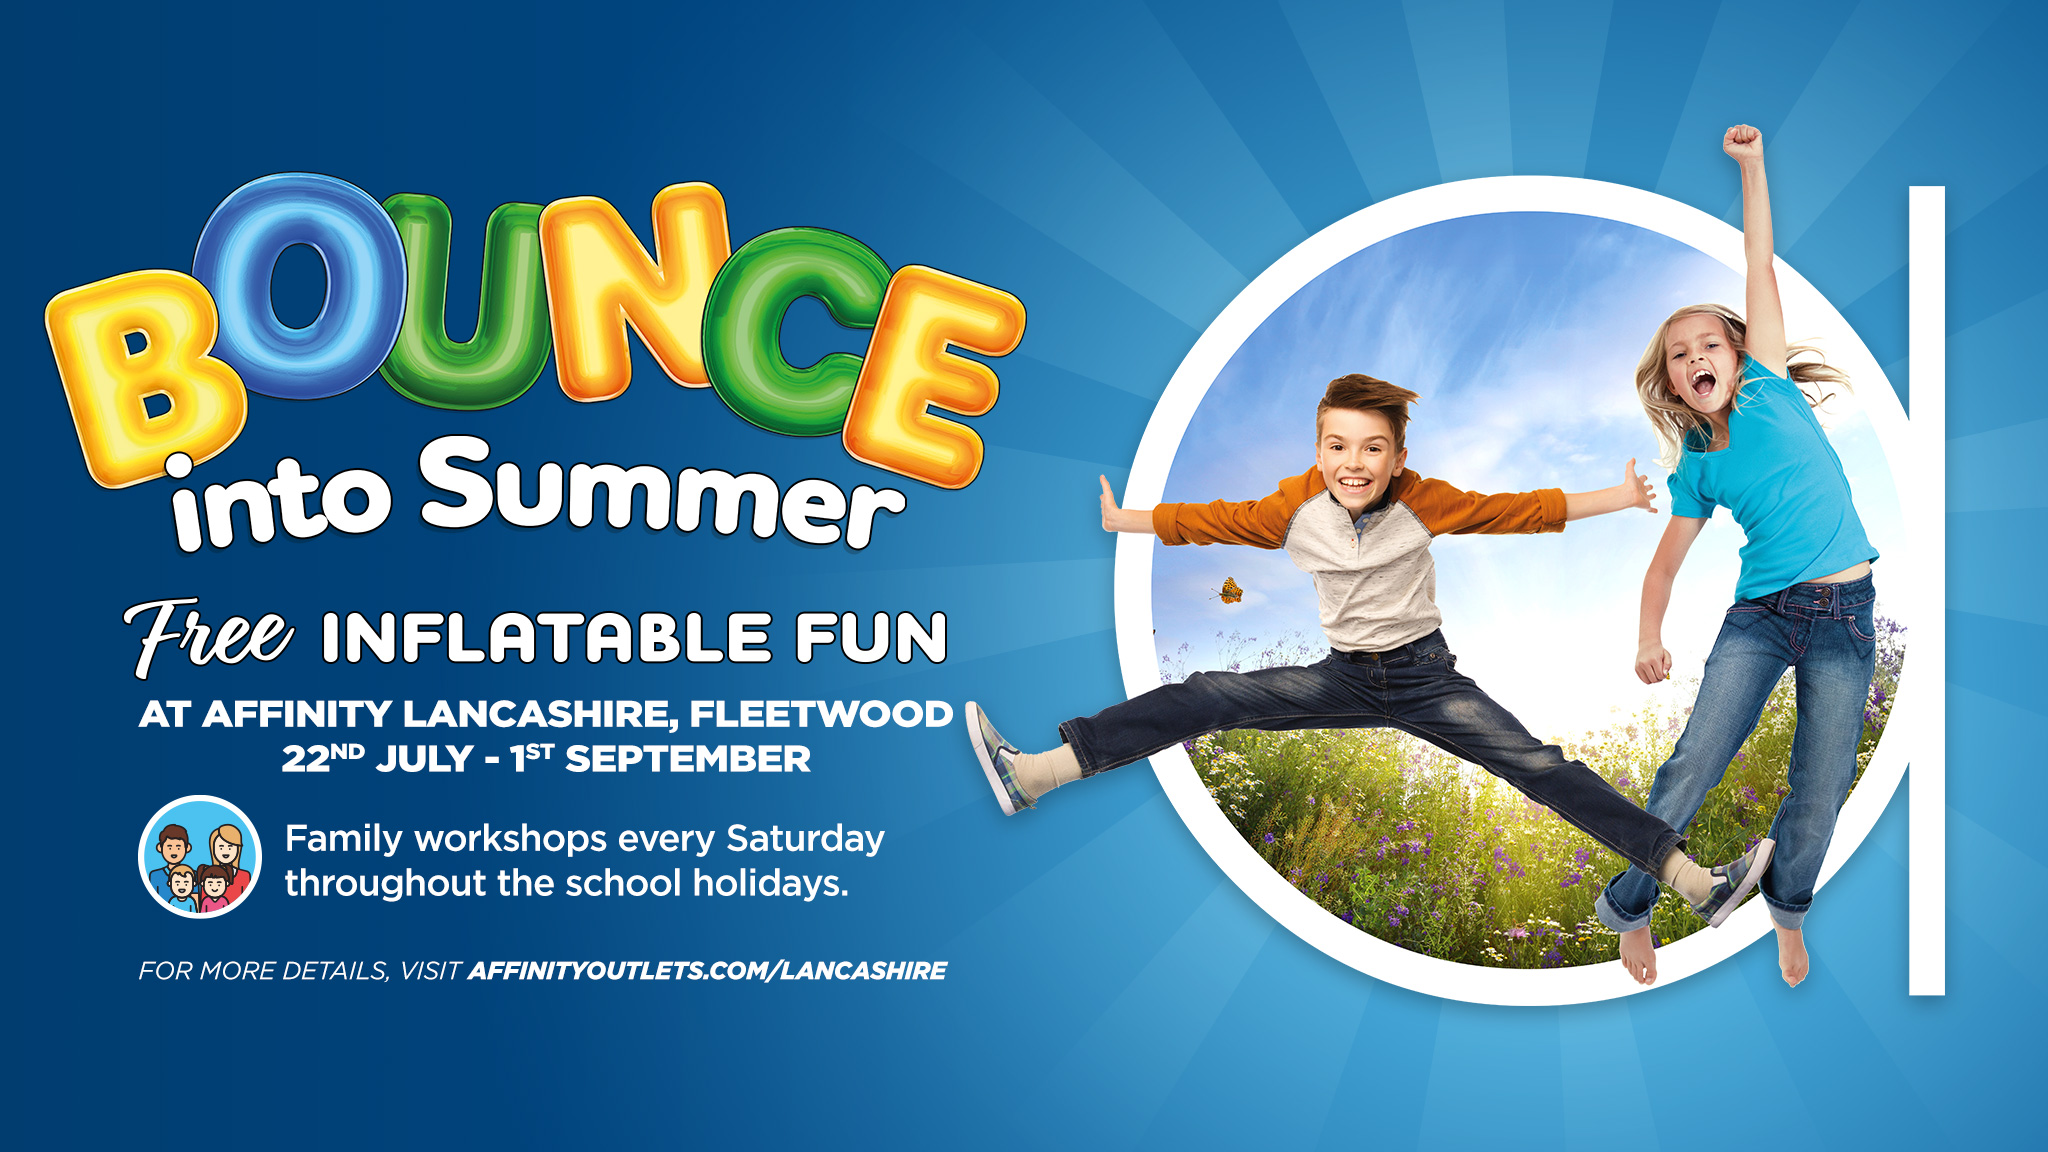 Affinity Lancashire Bounce into Summer Fleetwood